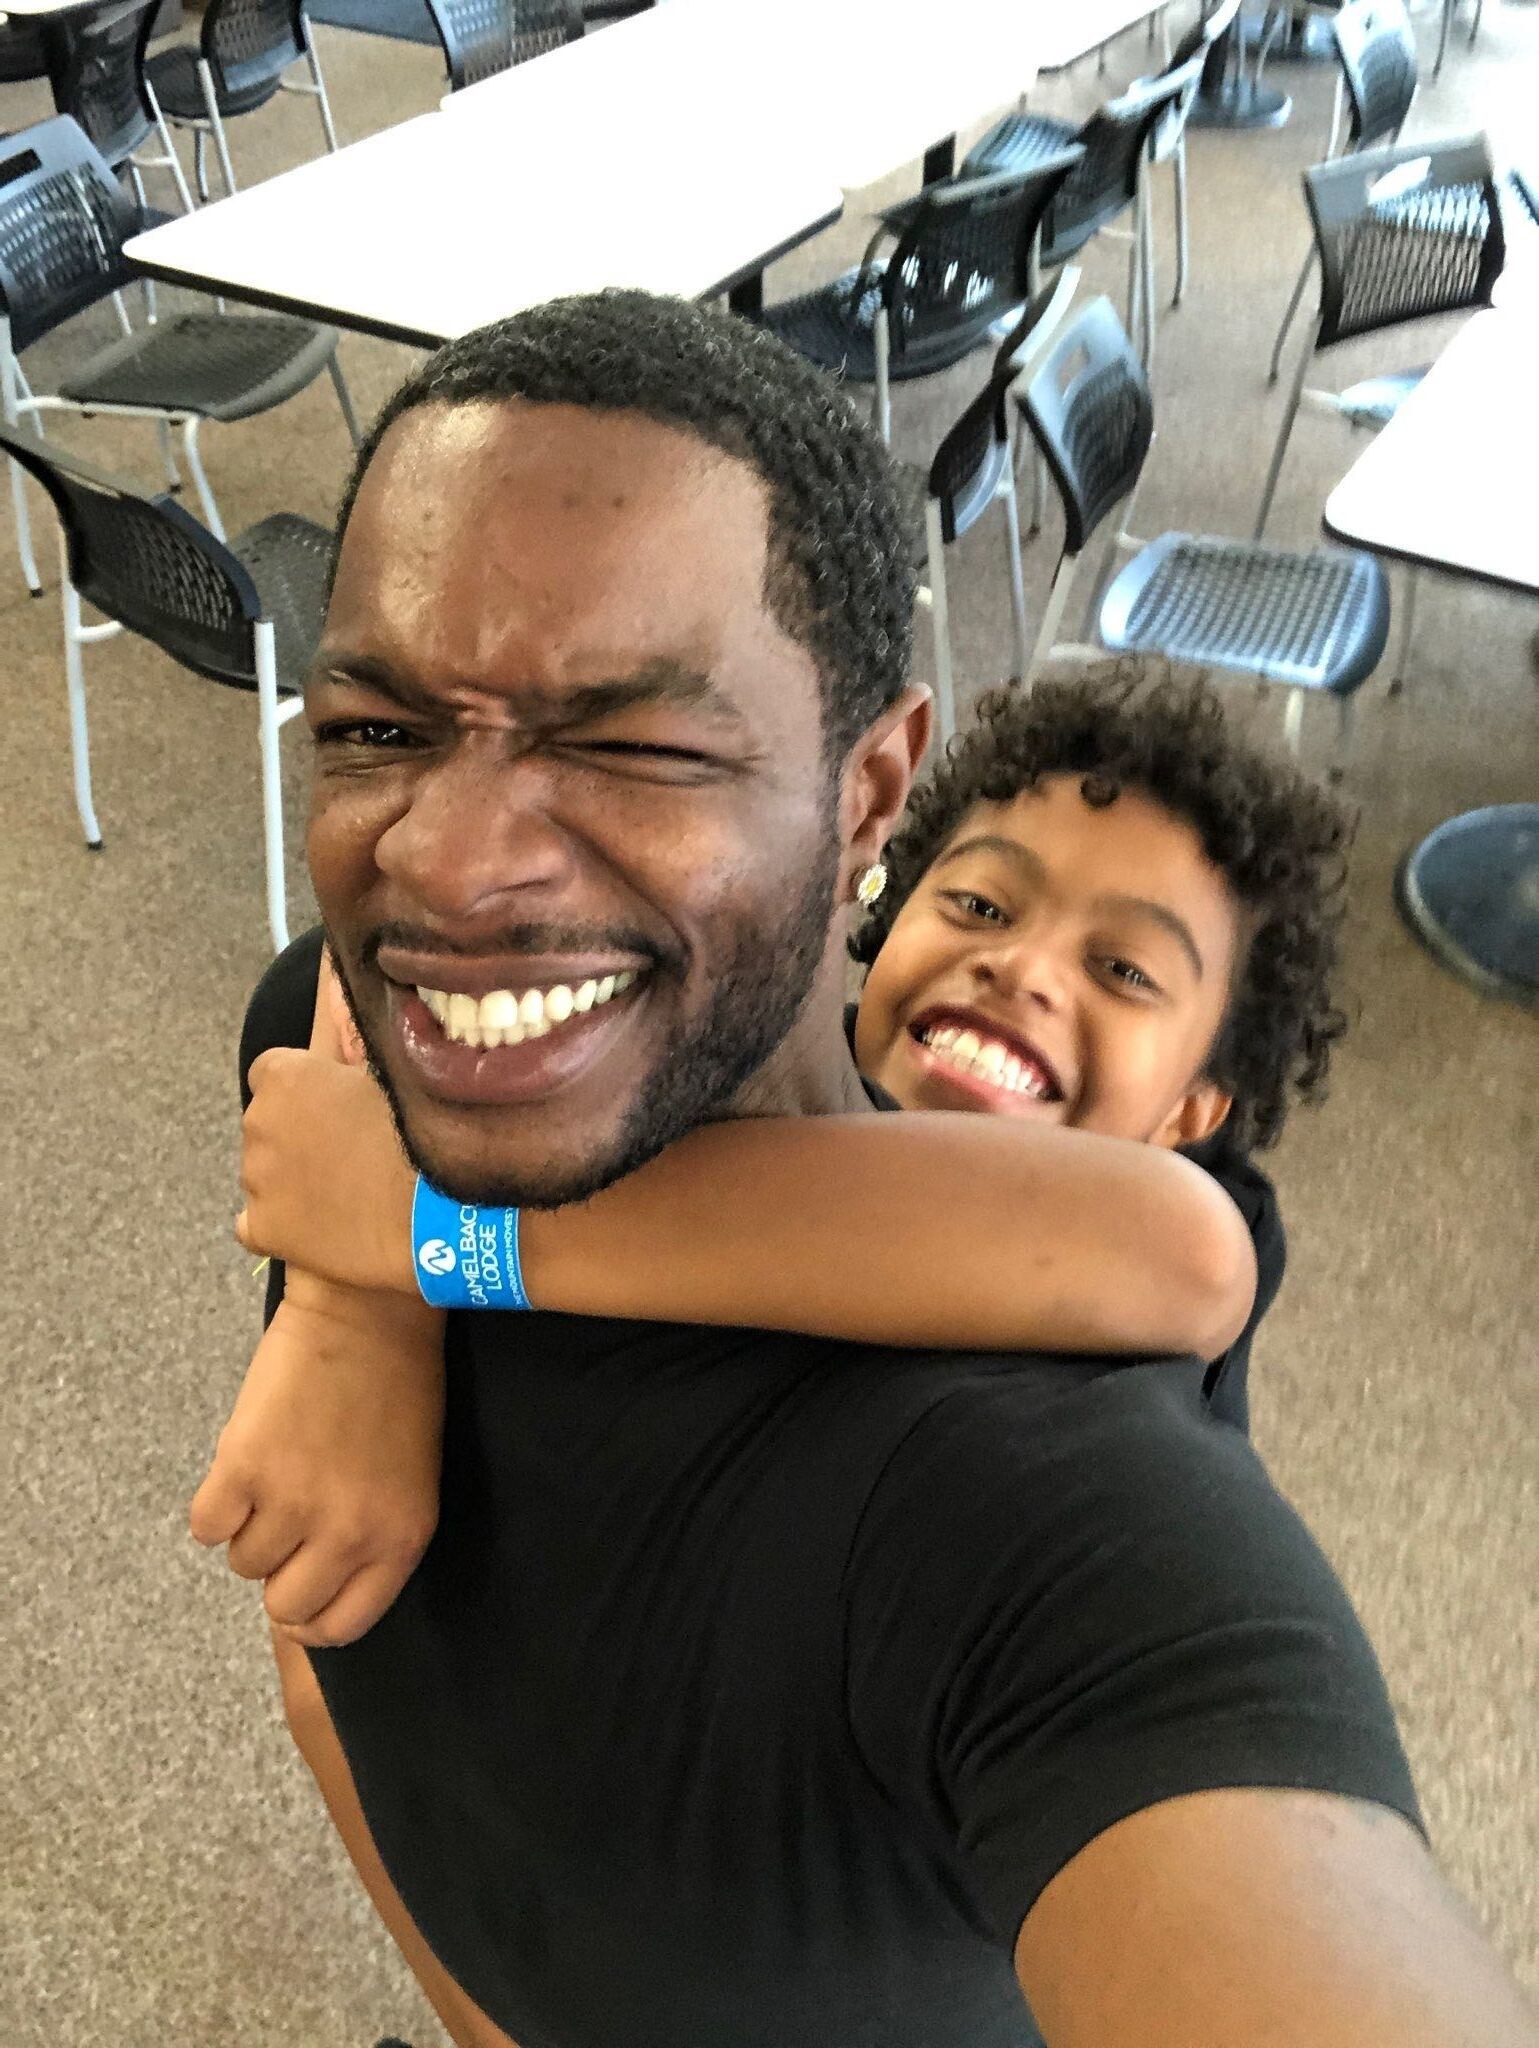 Kyle holds onto his dad's back as they pose for a selfie